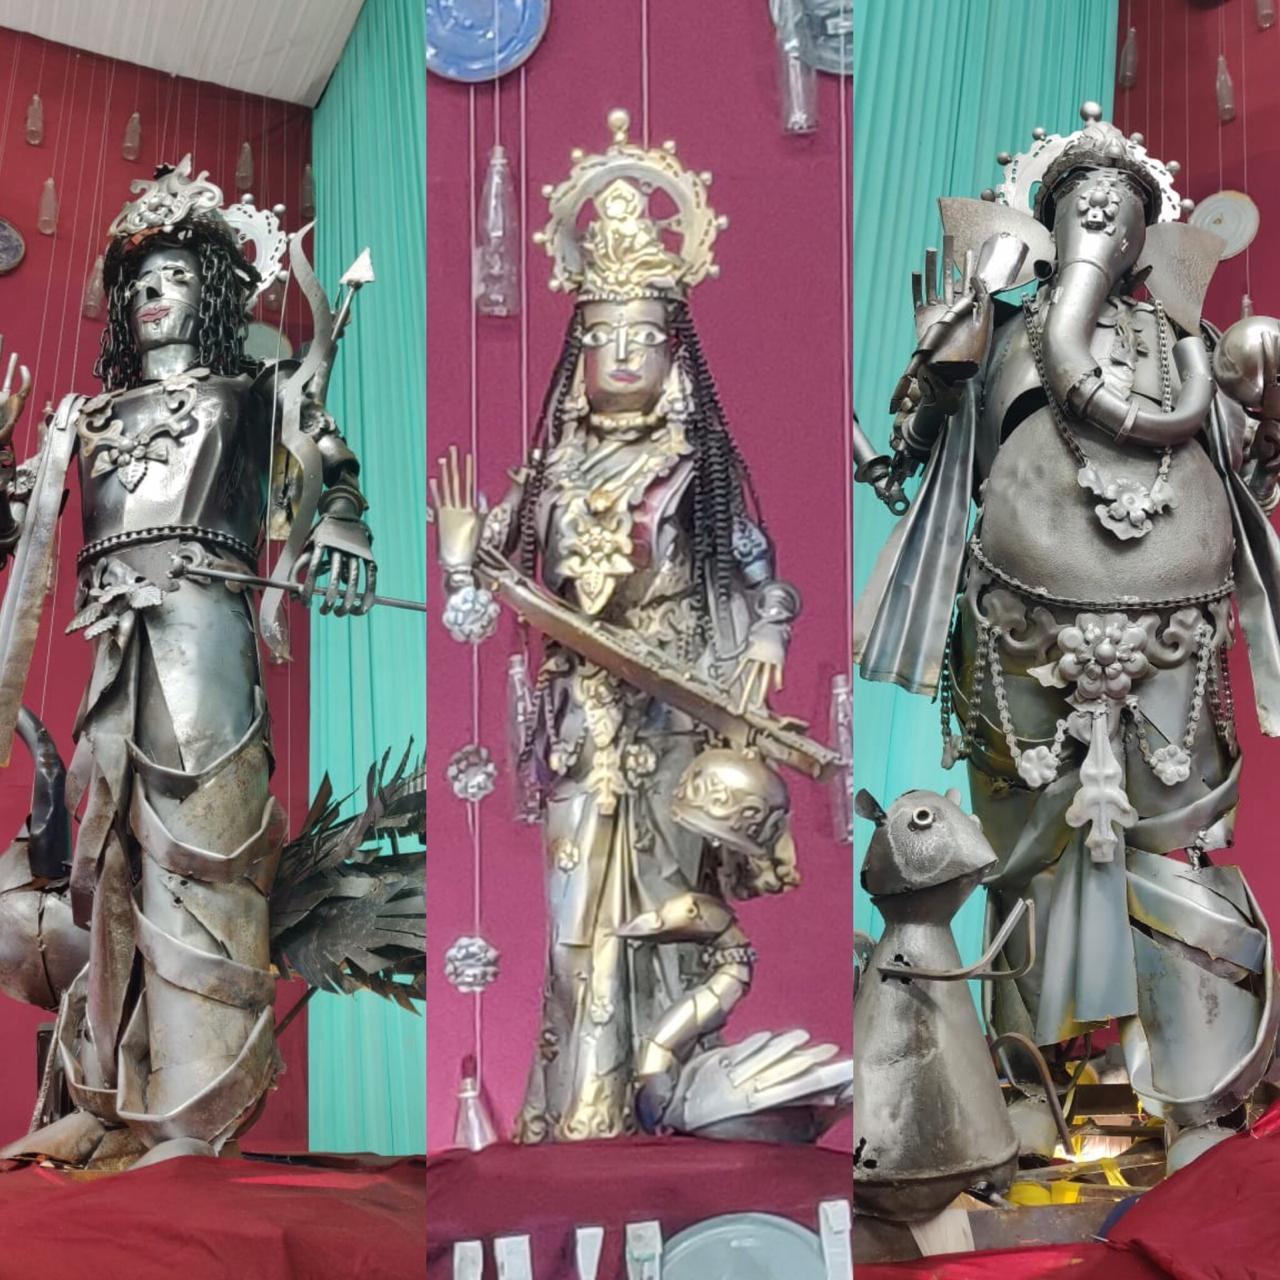 Durga Puja 2019 Becomes An Eco-friendly Affair With Pandals Across India Going Green And Plastic-Free